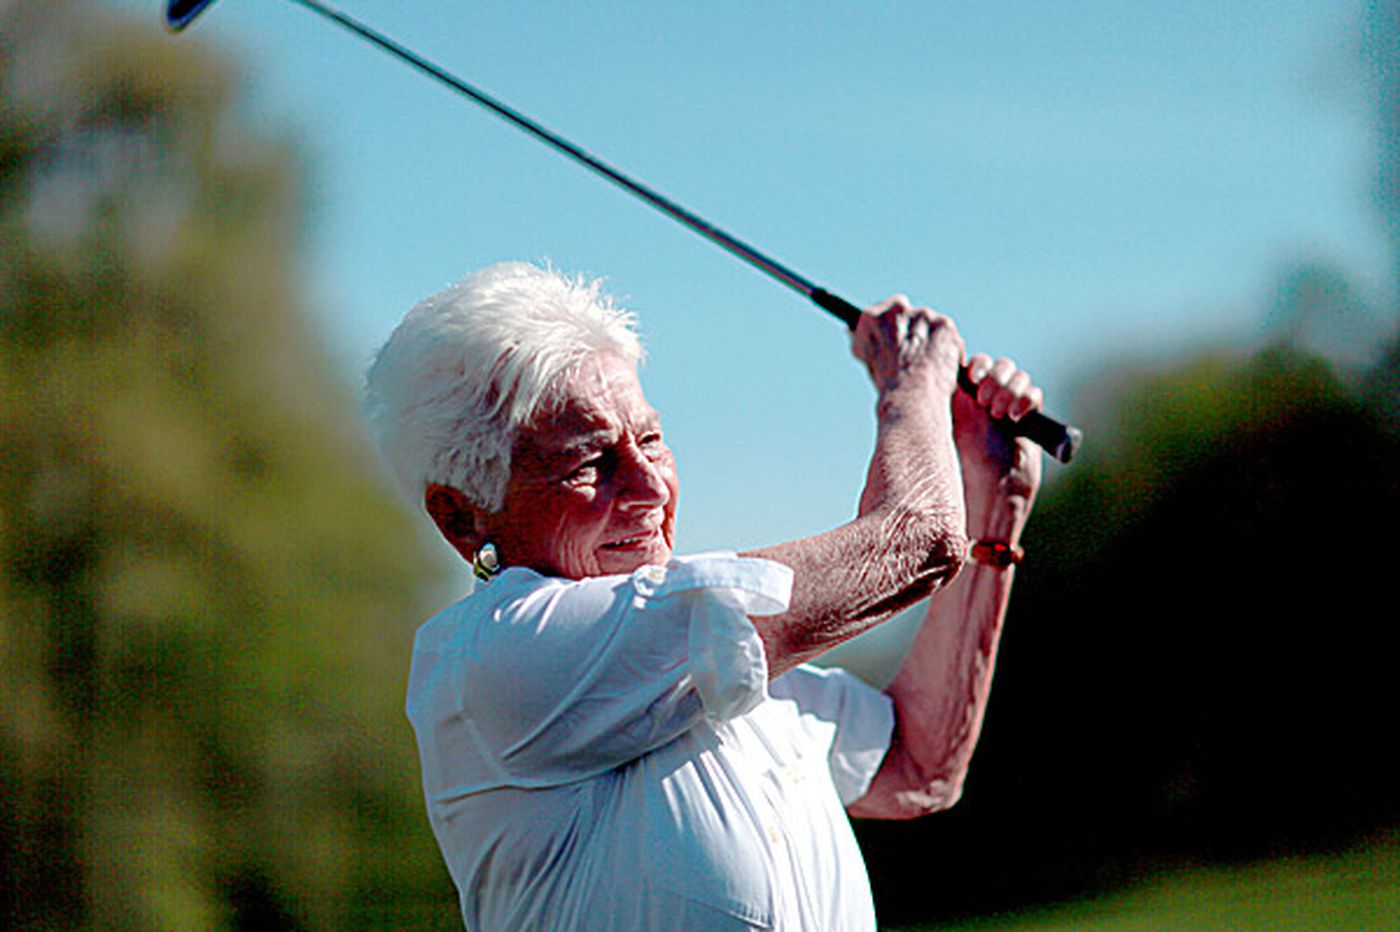 Bobbie Rose still going strong on golf course at 98